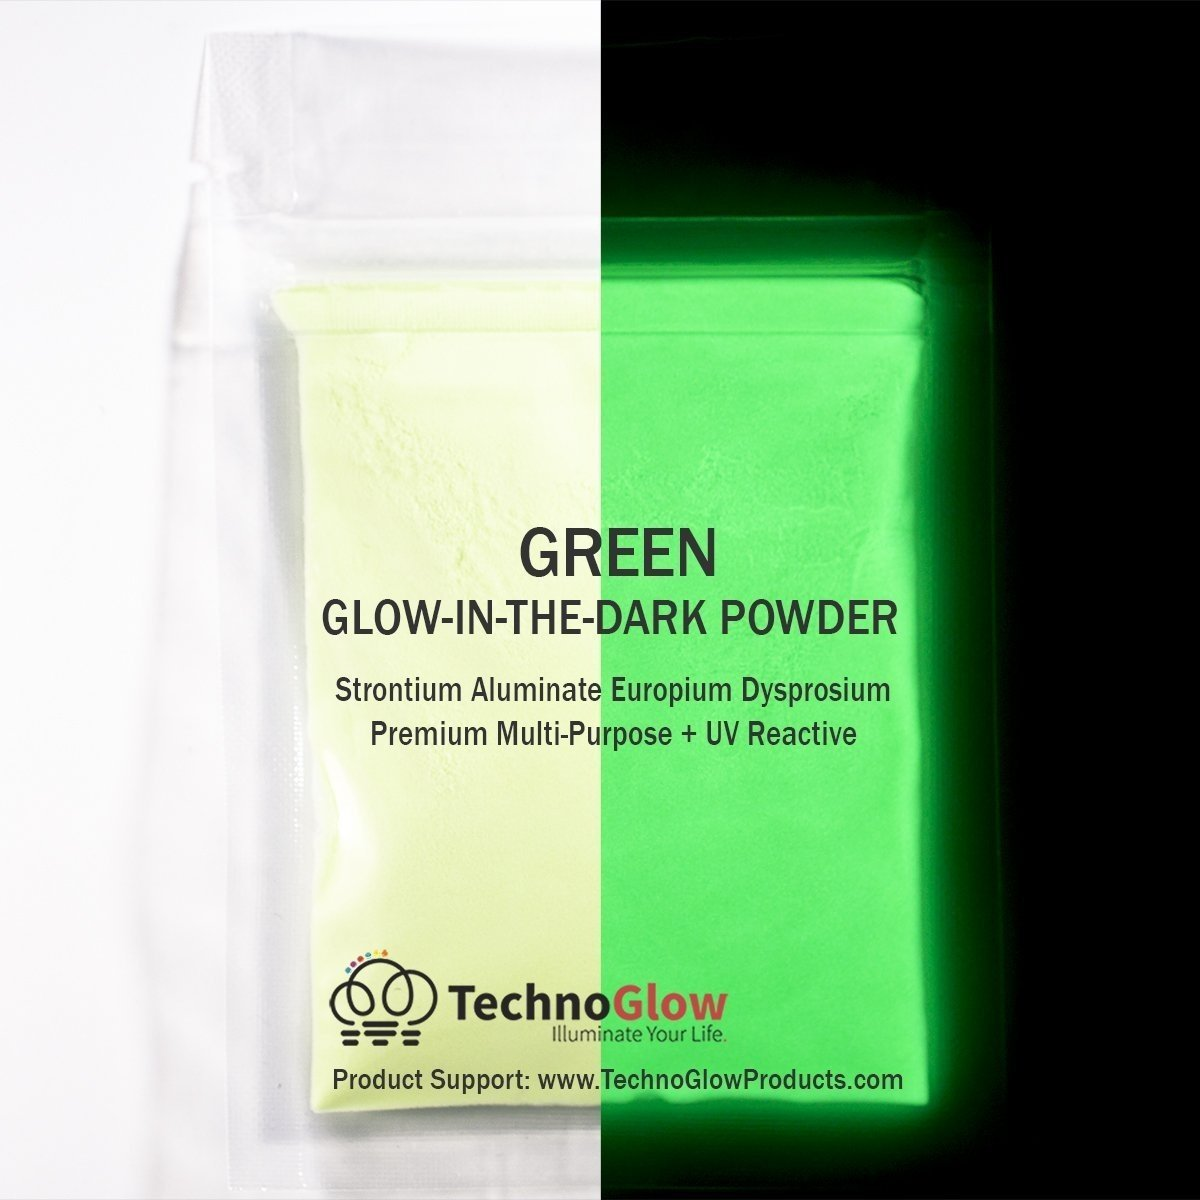 Glow in The Dark & UV Reactive Powder - Multipurpose PRO-Series (Natural Aqua, 2 Ounces (57g)) Techno Glow Inc